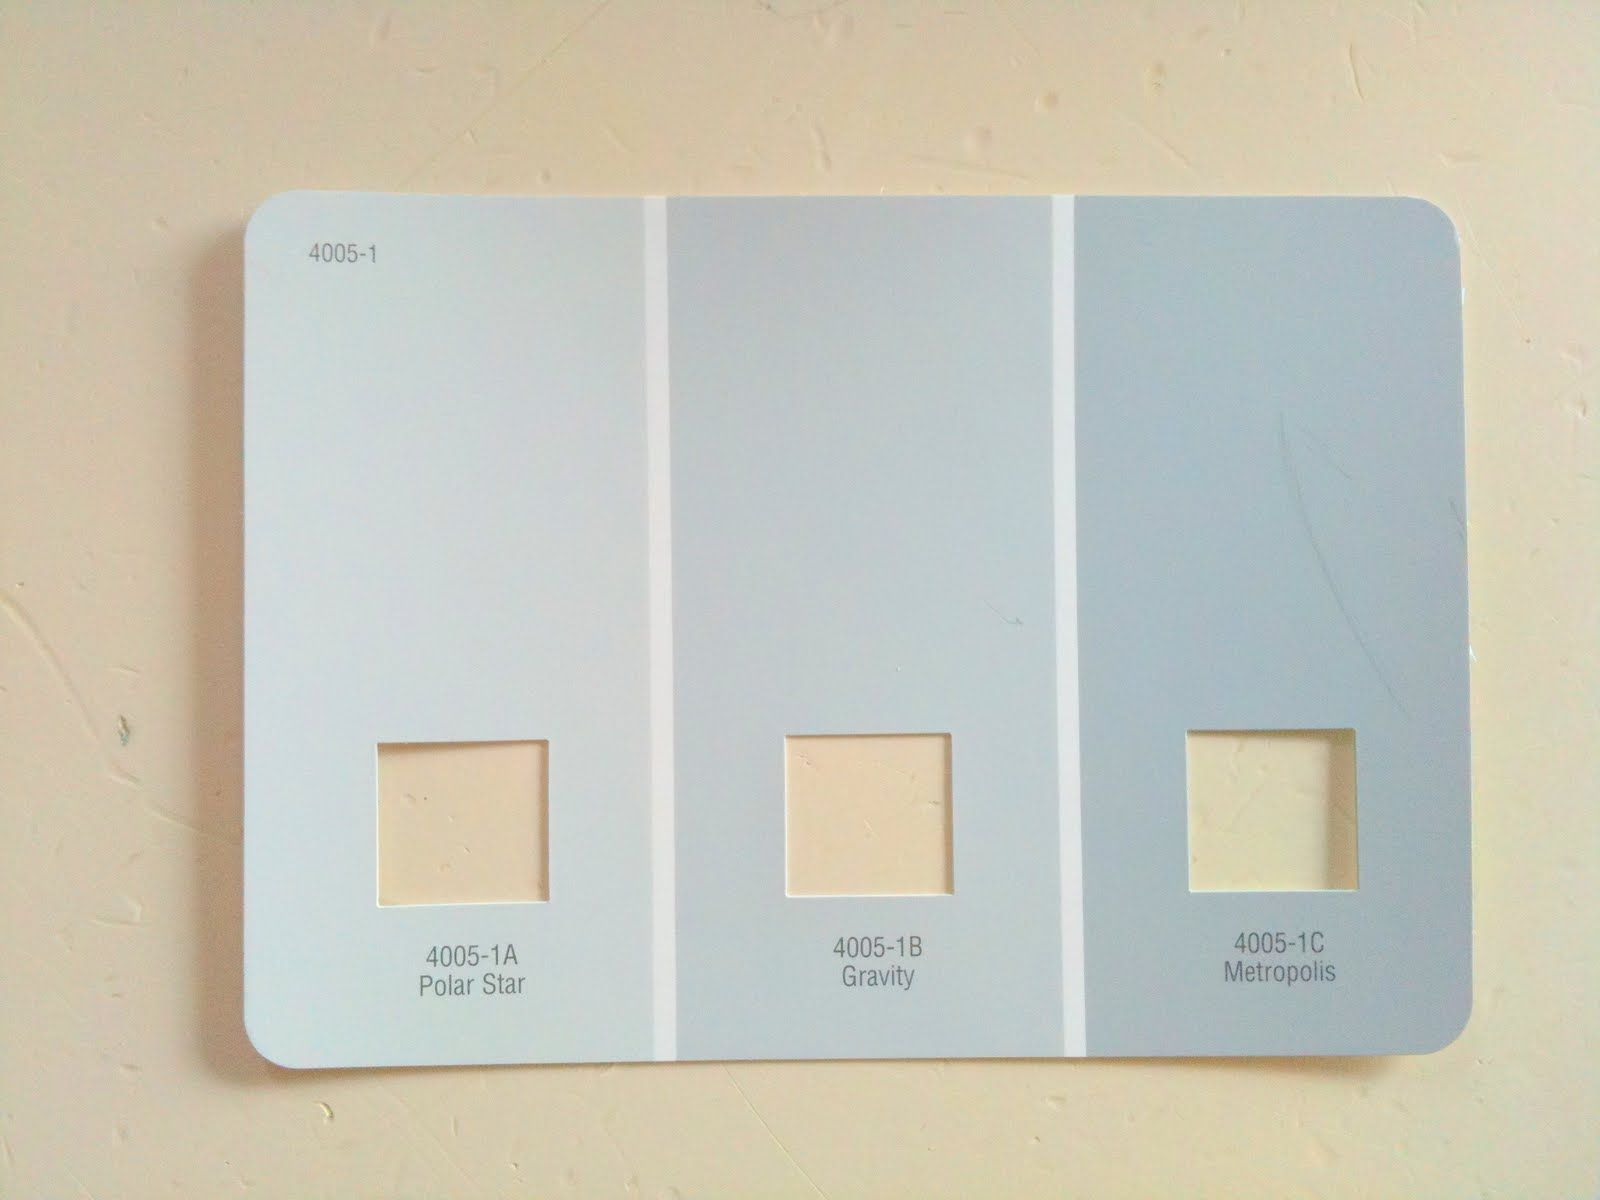 Valspar Colors Light Grey Google Search Valspar Paint Colors Gray Valspar Paint Colors Grey Paint Colors